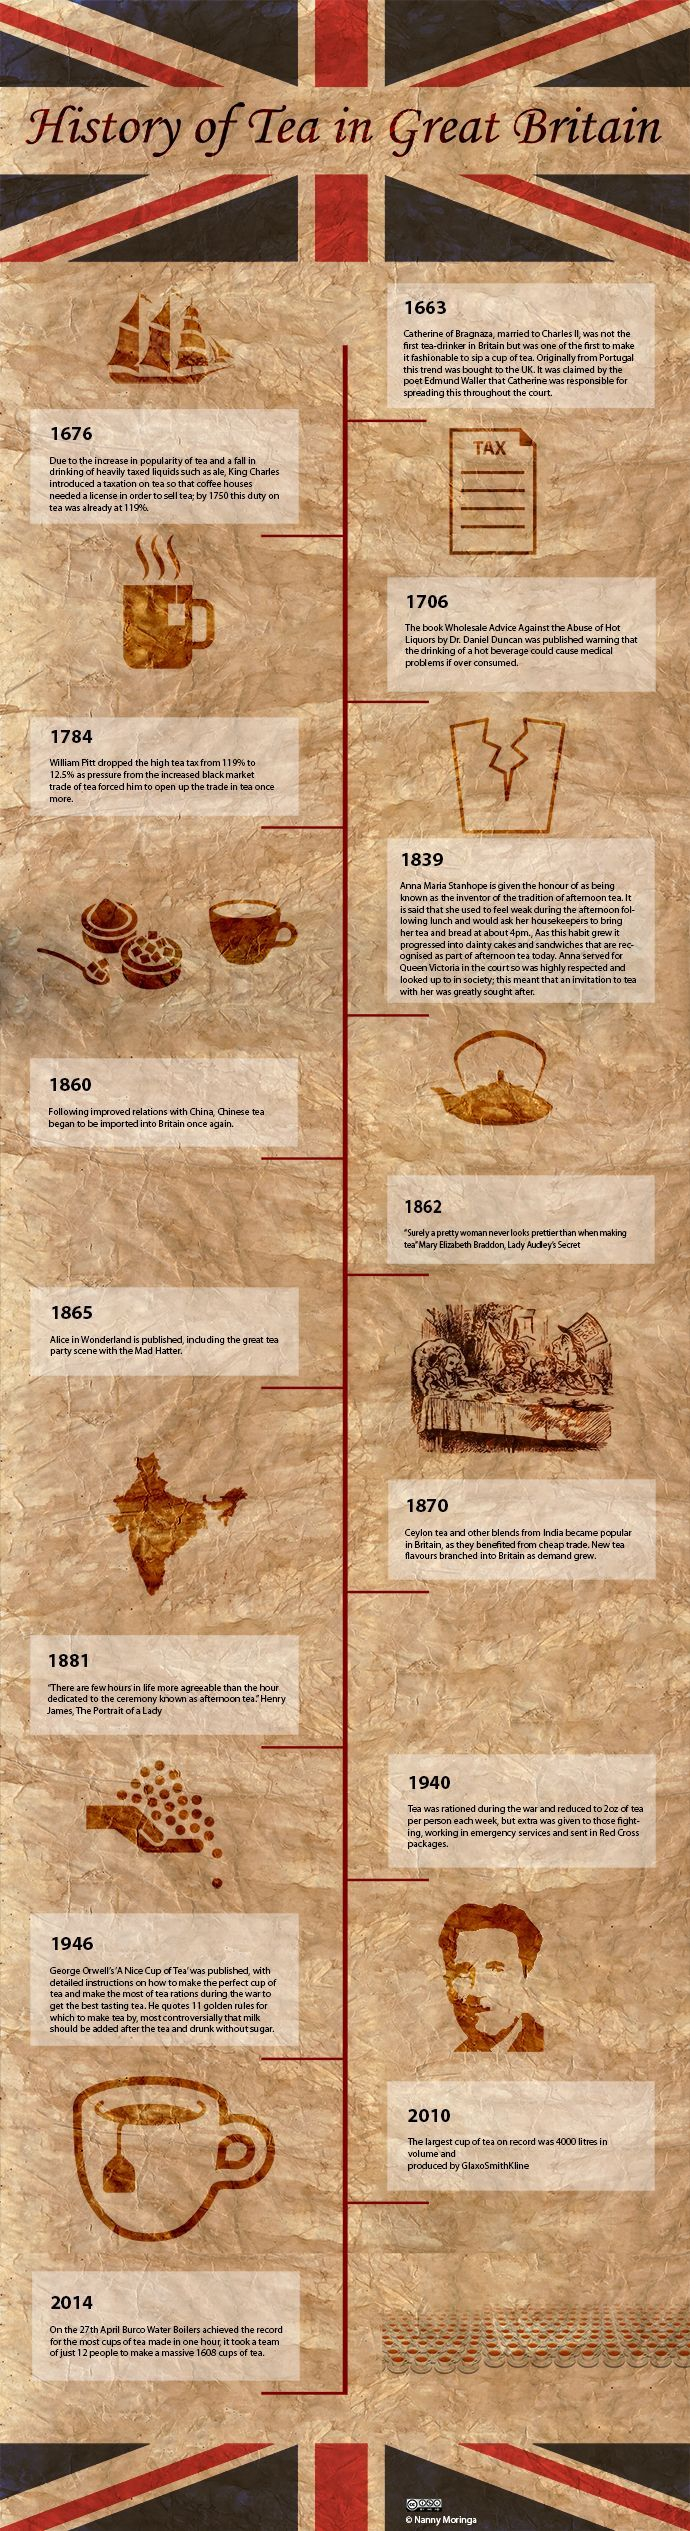 History of Tea in Great Britian http://www.afternoontea.co.uk/